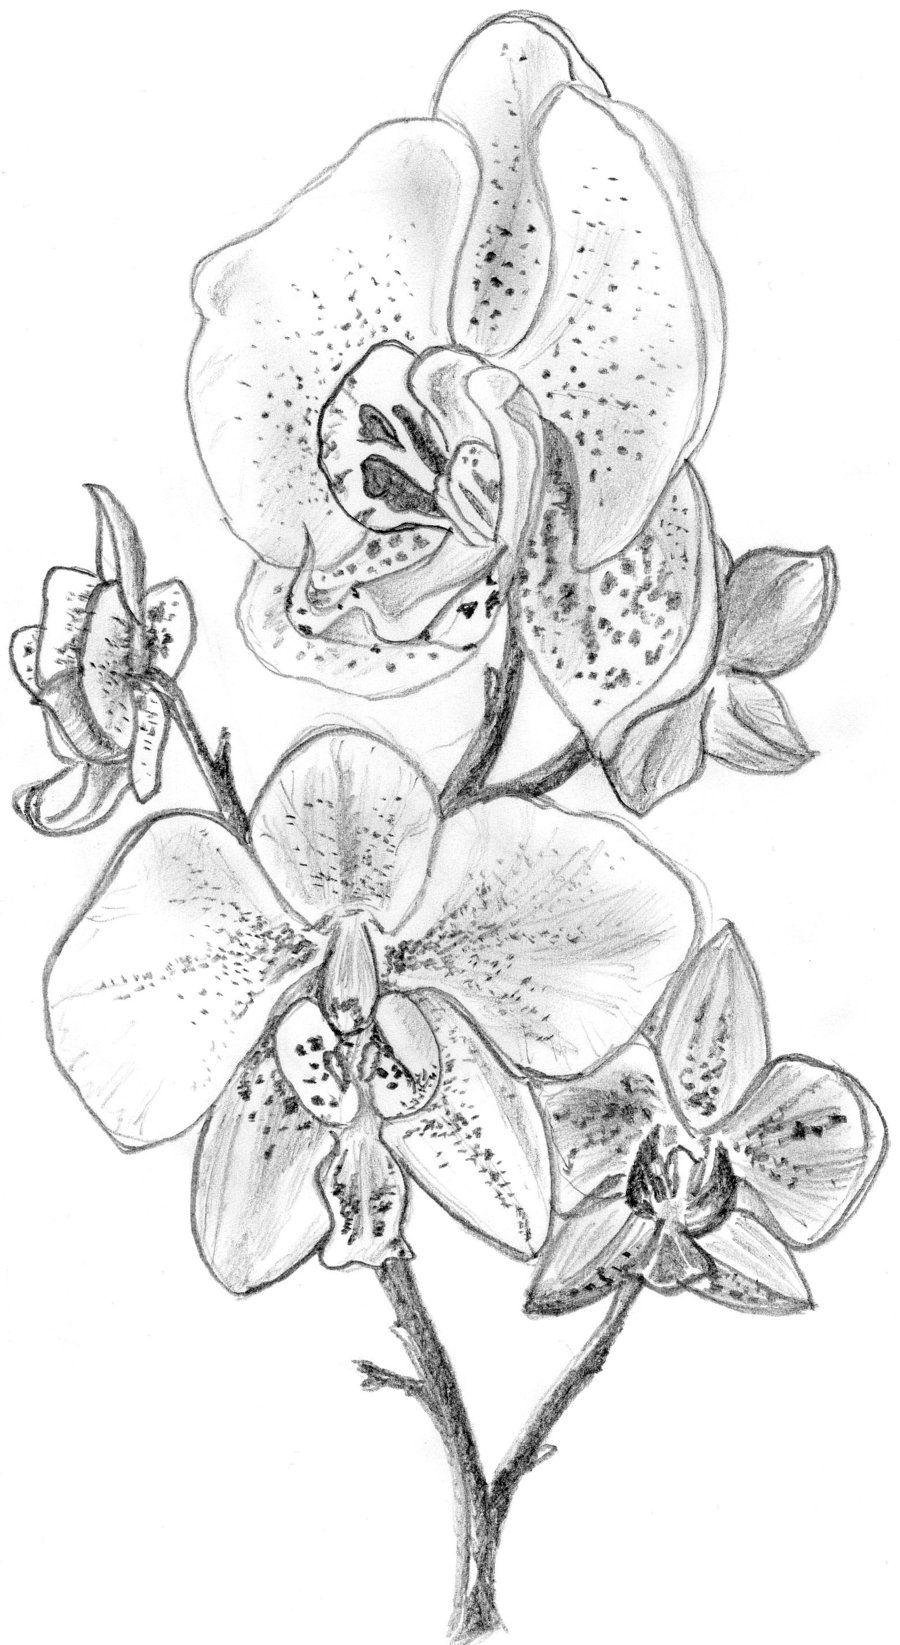 Orchid clipart orchid sketch. Sketches by irongarlic traditional